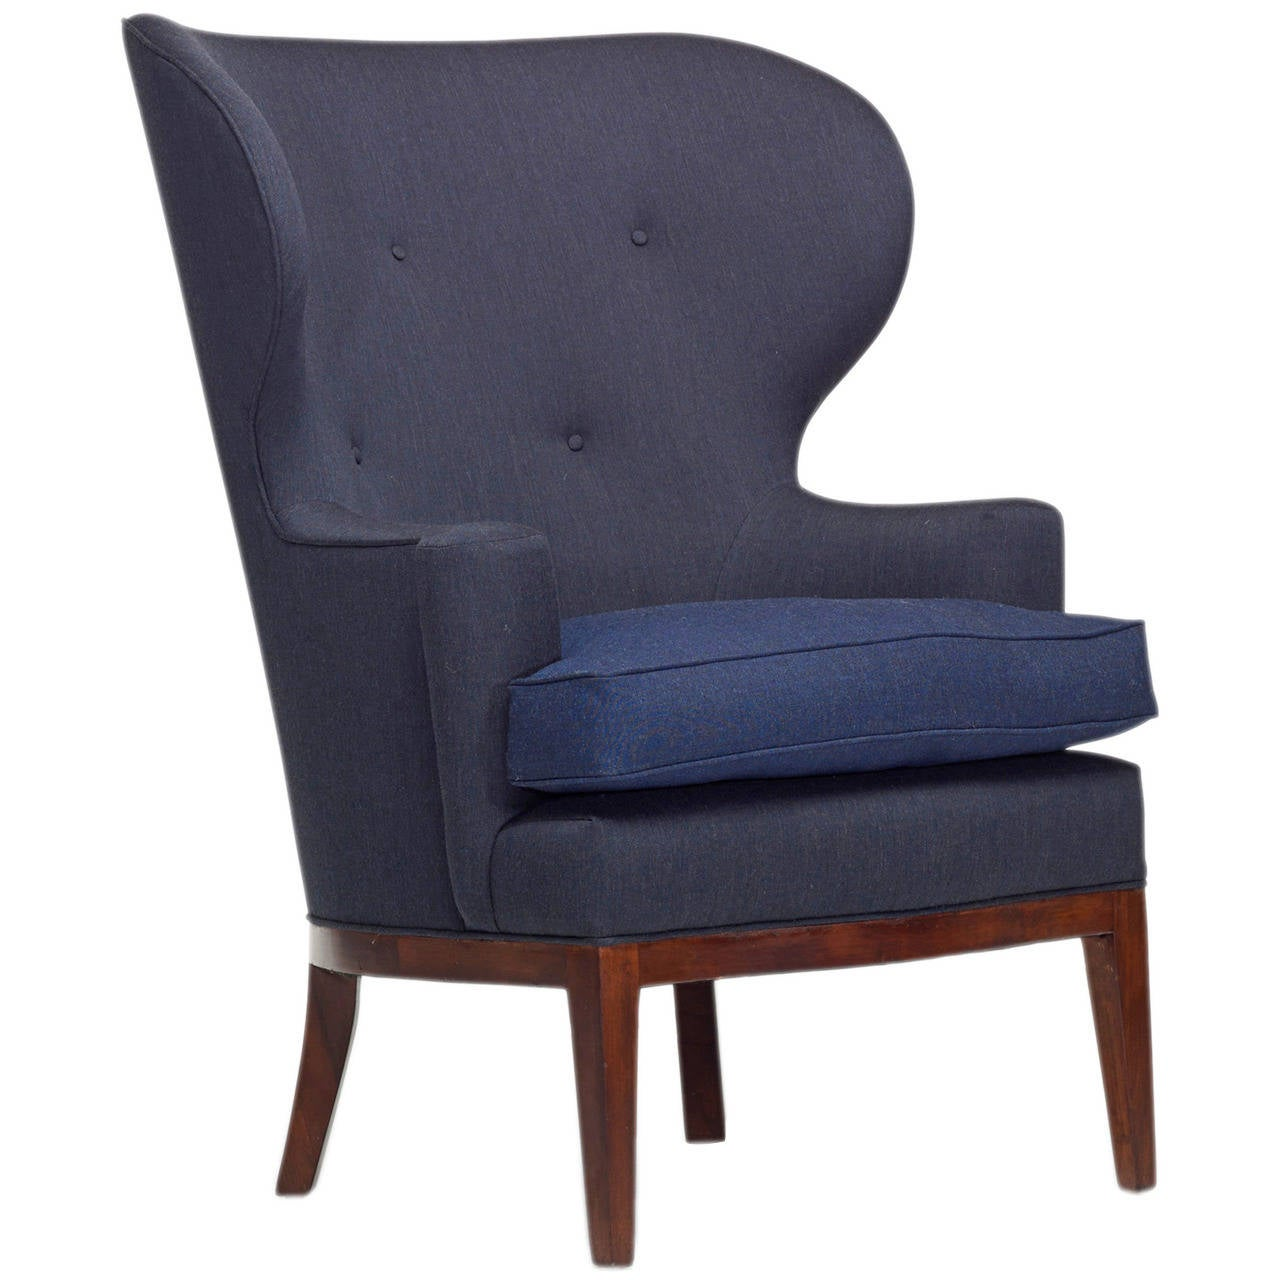 Early lounge chair by edward wormley for dunbar at 1stdibs - Edward wormley chairs ...